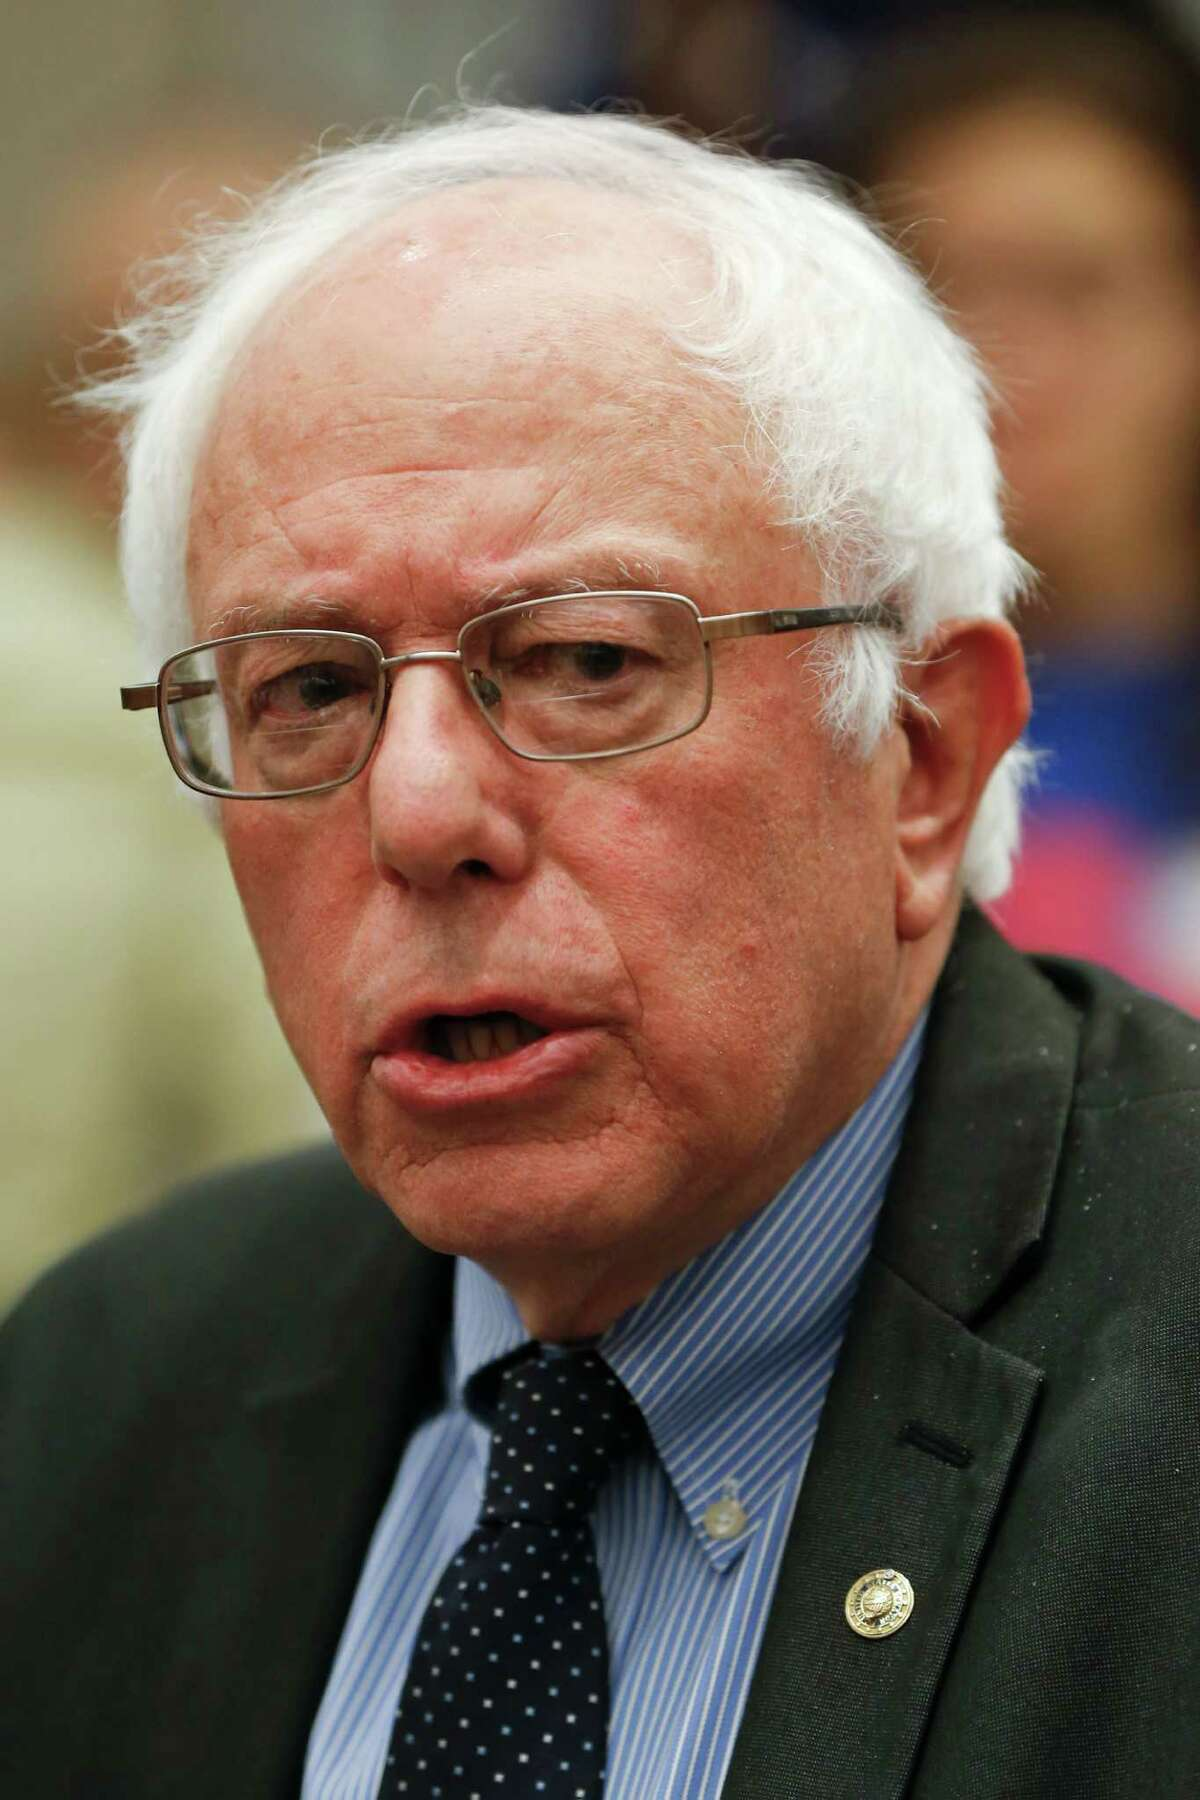 Democratic presidential candidate, Sen. Bernie Sanders, I-Vt. speaks at a news conference with local union leaders before a campaign stop, Thursday, March 31, 2016, in Pittsburgh. (AP Photo/Keith Srakocic) ORG XMIT: PAKS116